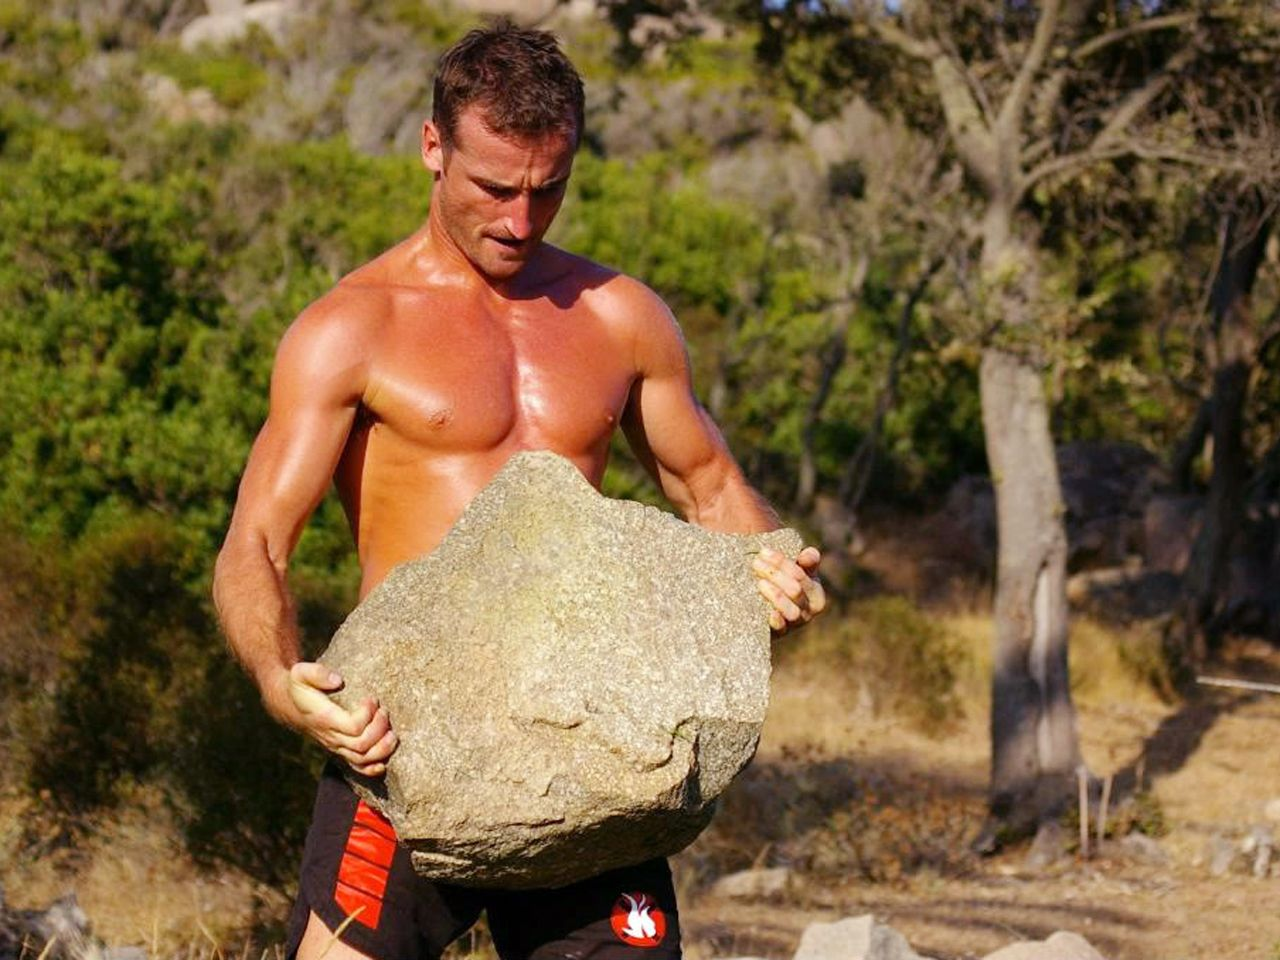 Get primal: Work out like a cave man (or woman)